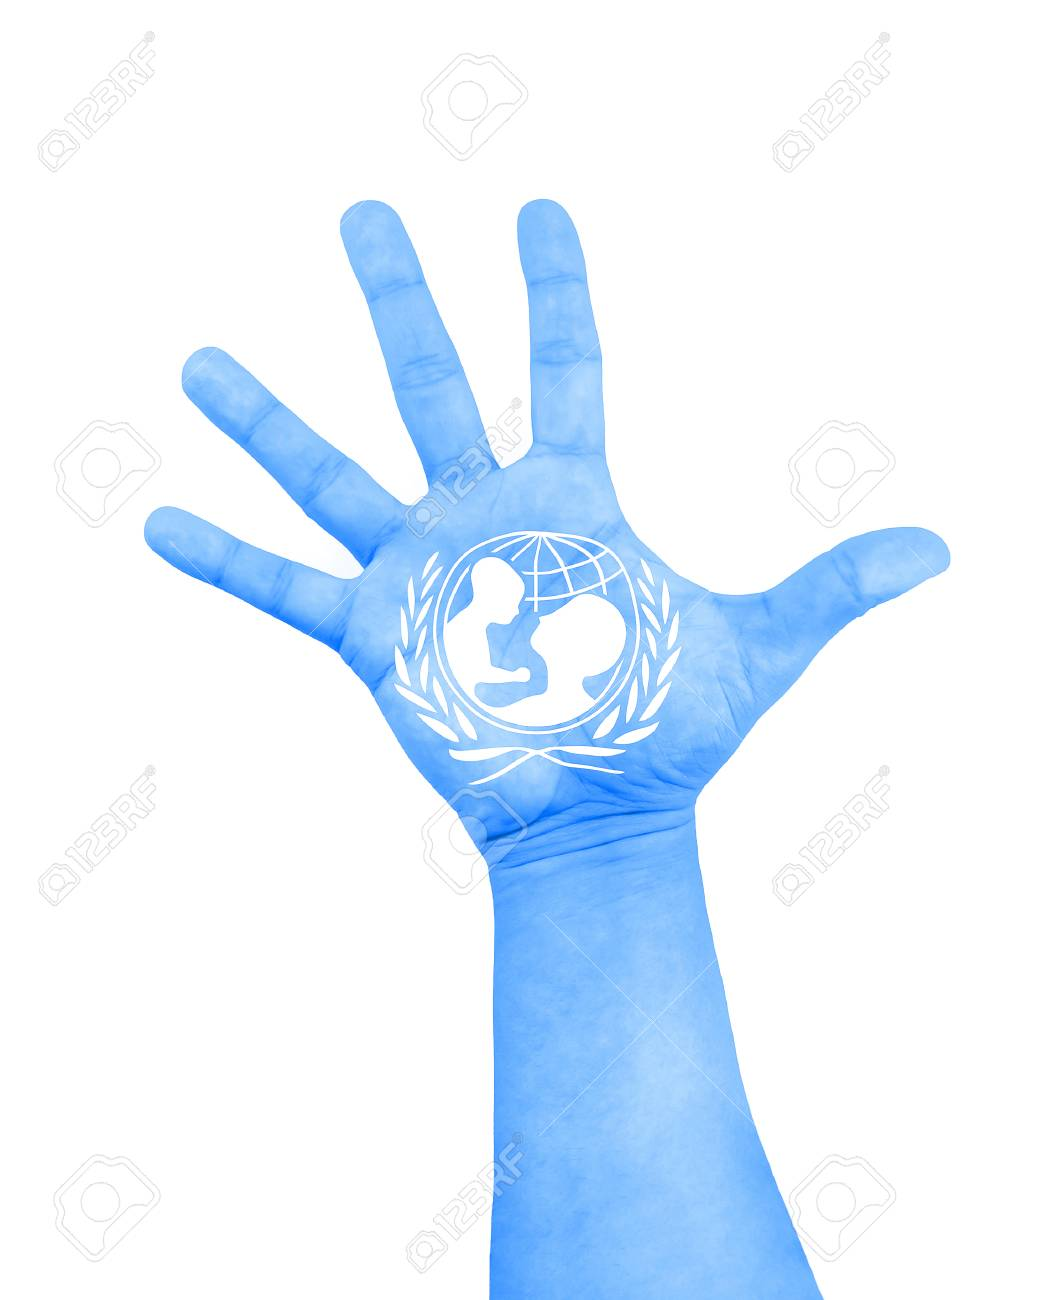 ROME, Italy - December 9, 2015: open hand raised with color blue and white of flag of unicef painted on white background - 68045075